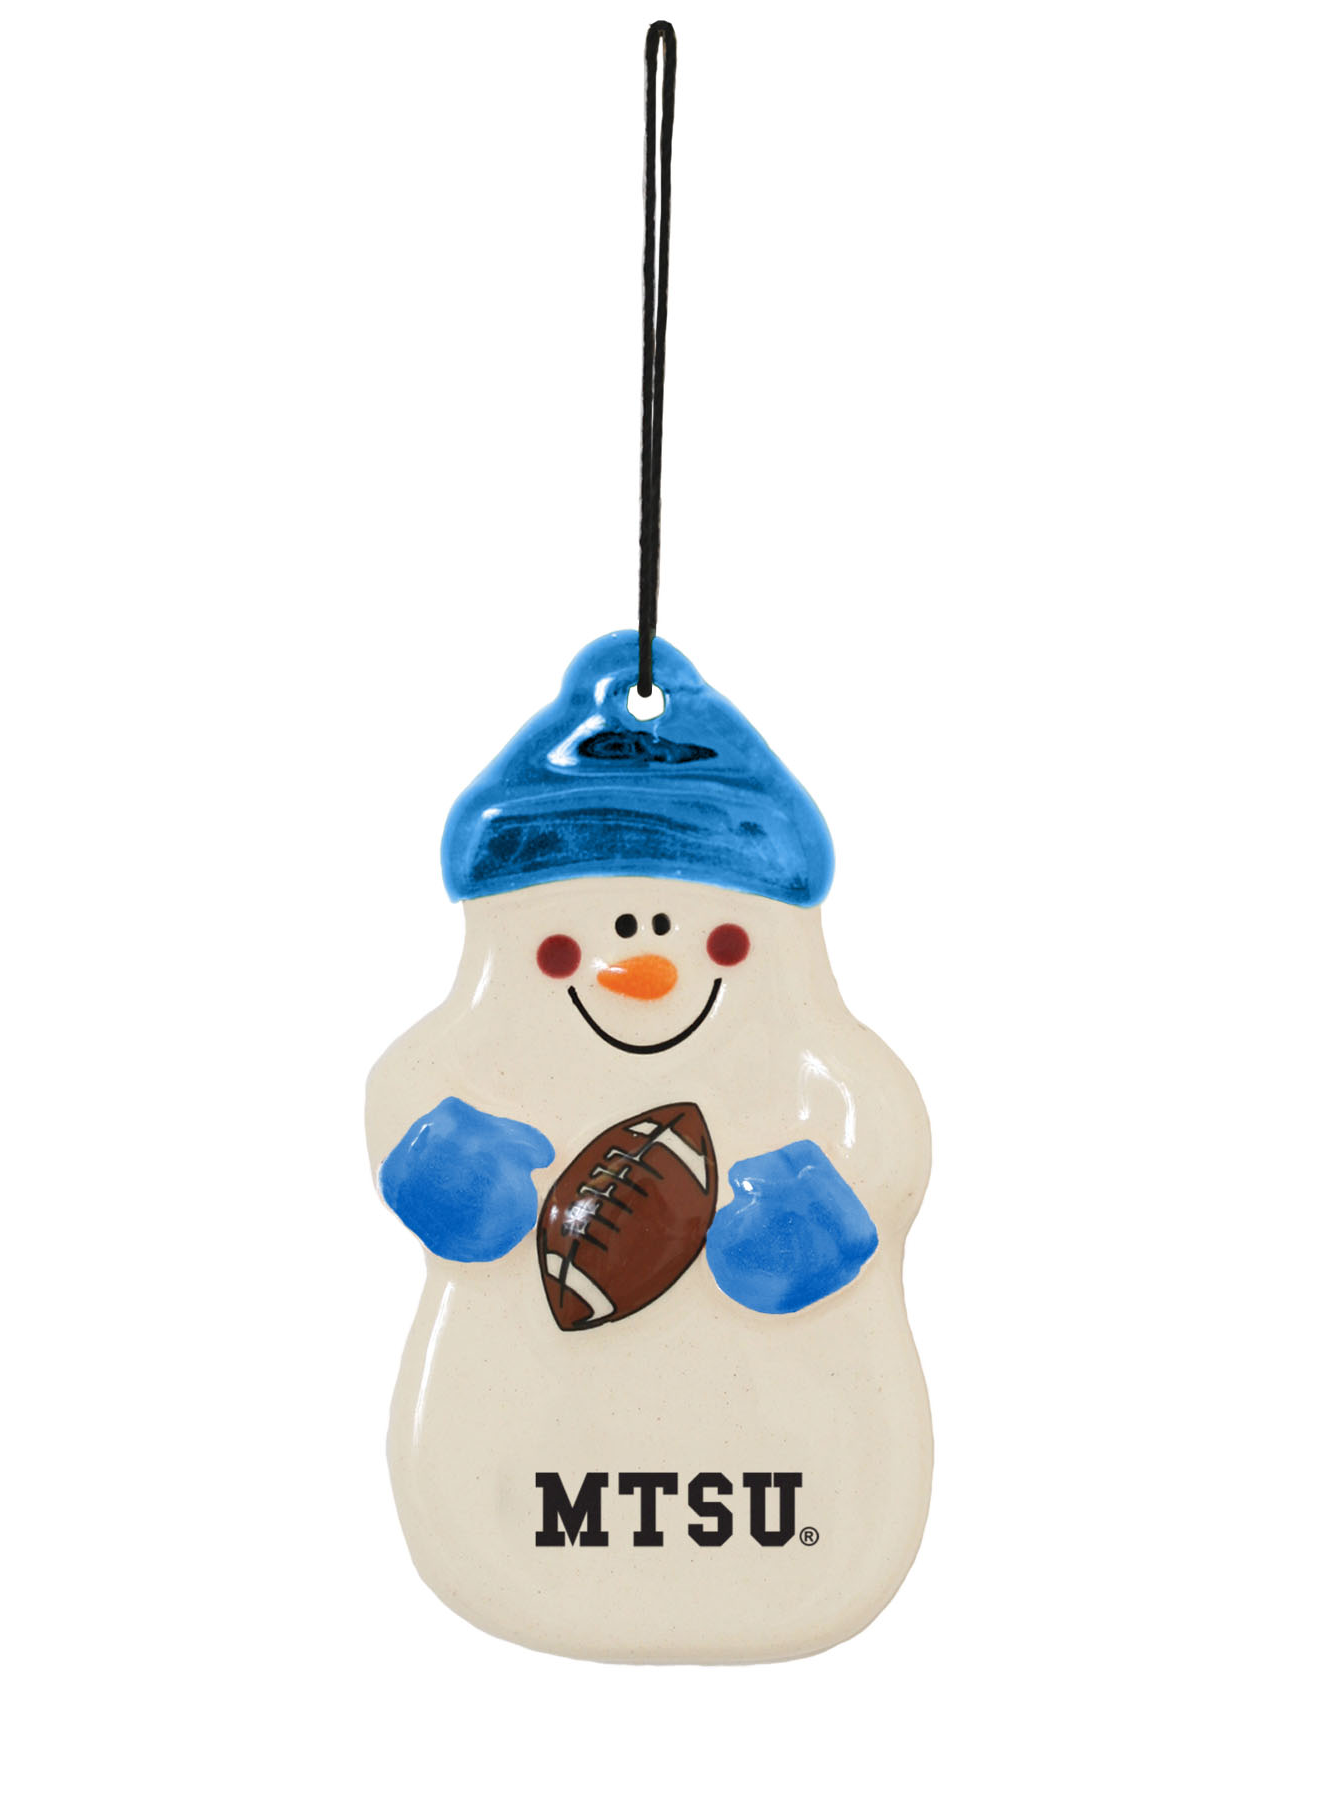 MTSU Snowman Football Ornament